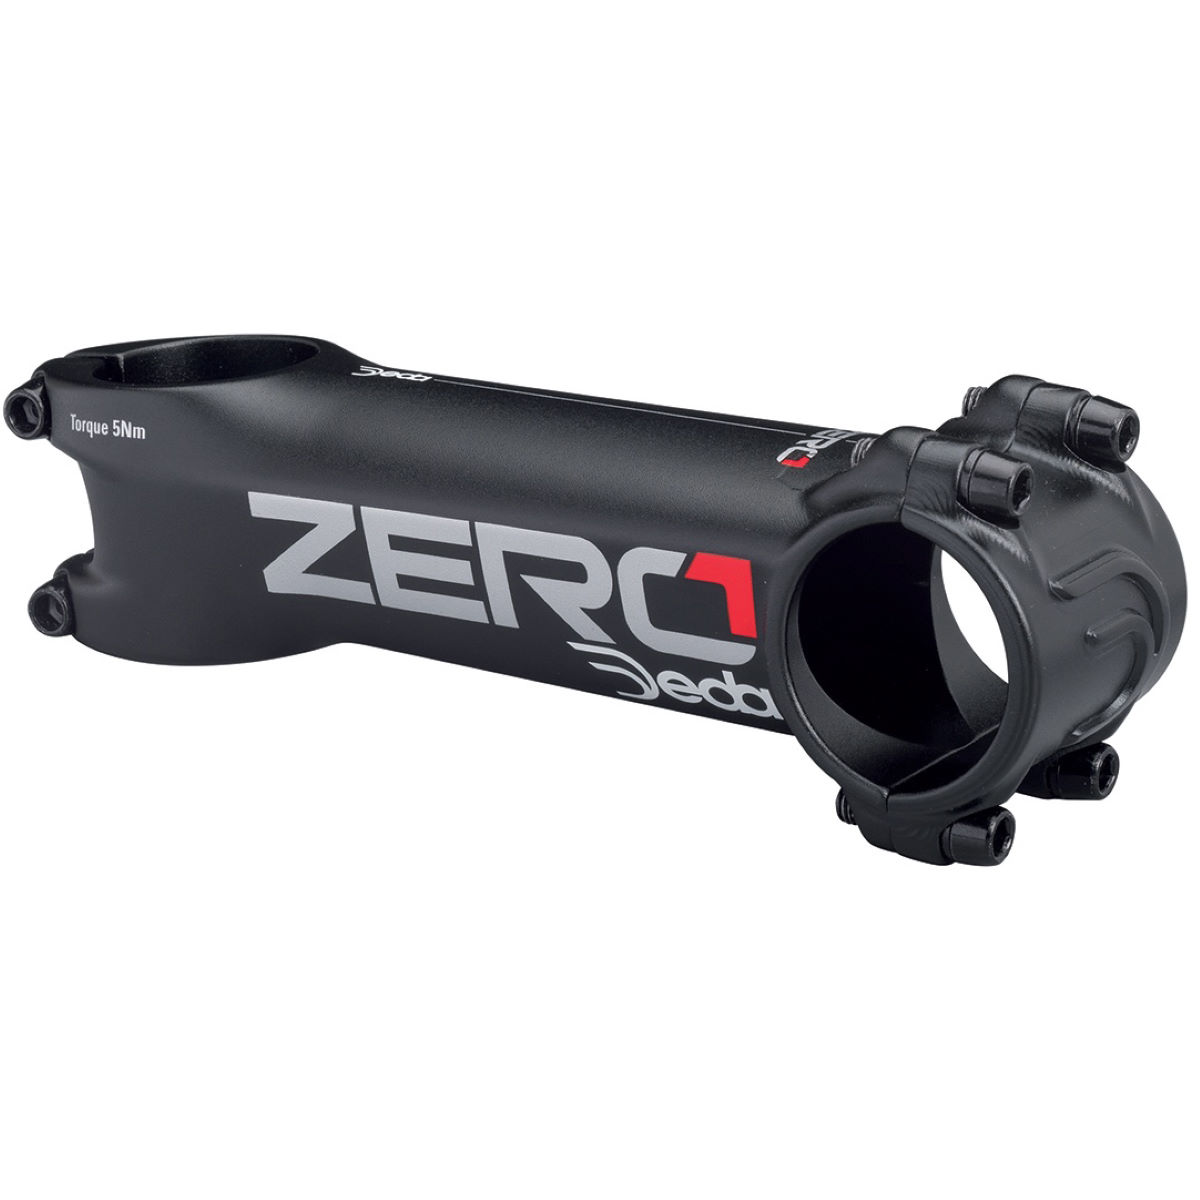 Deda Deda Zero1 Stem   Stems